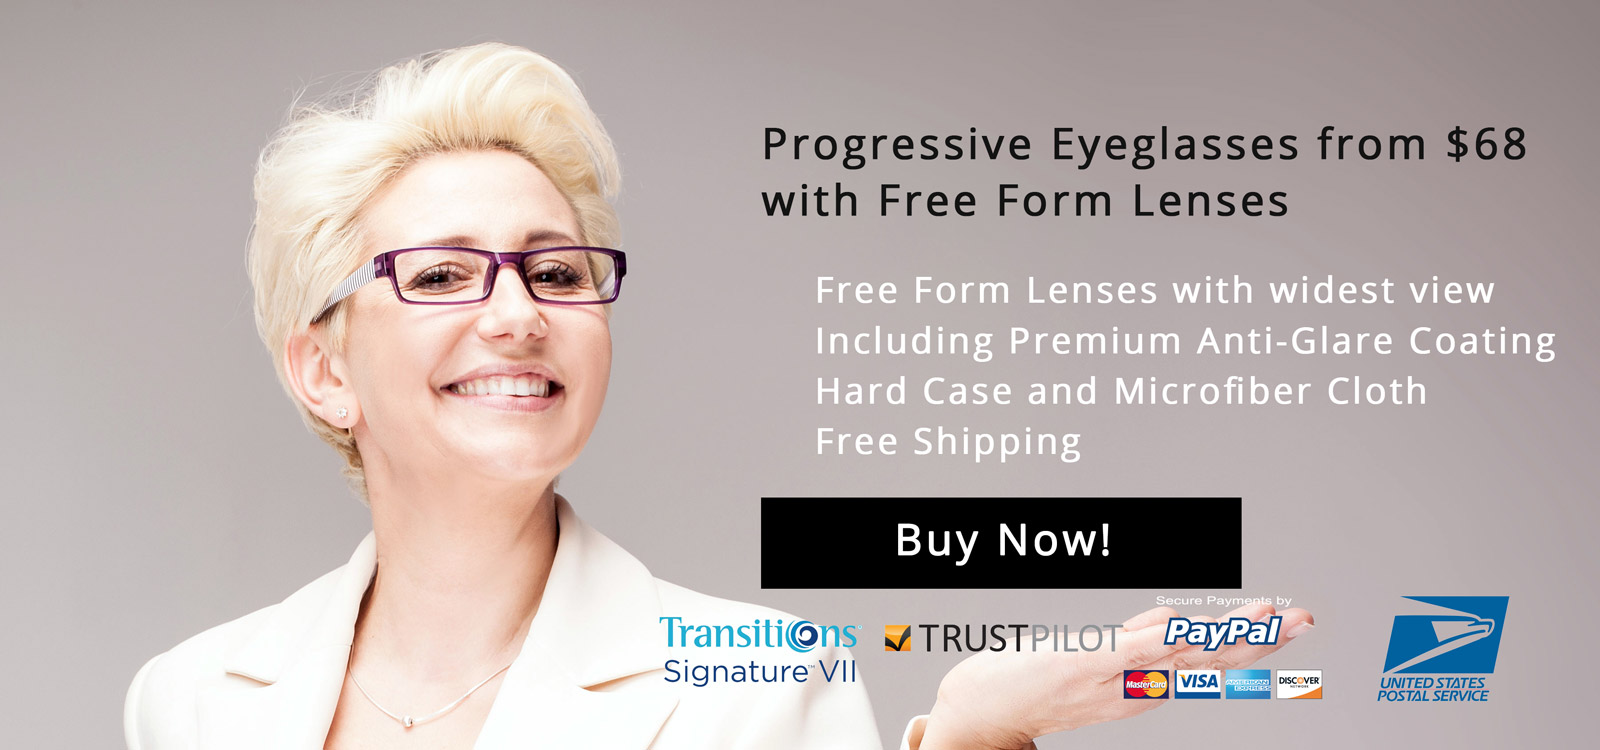 Progressive Eyeglasses from $68 with Free Form Lenses